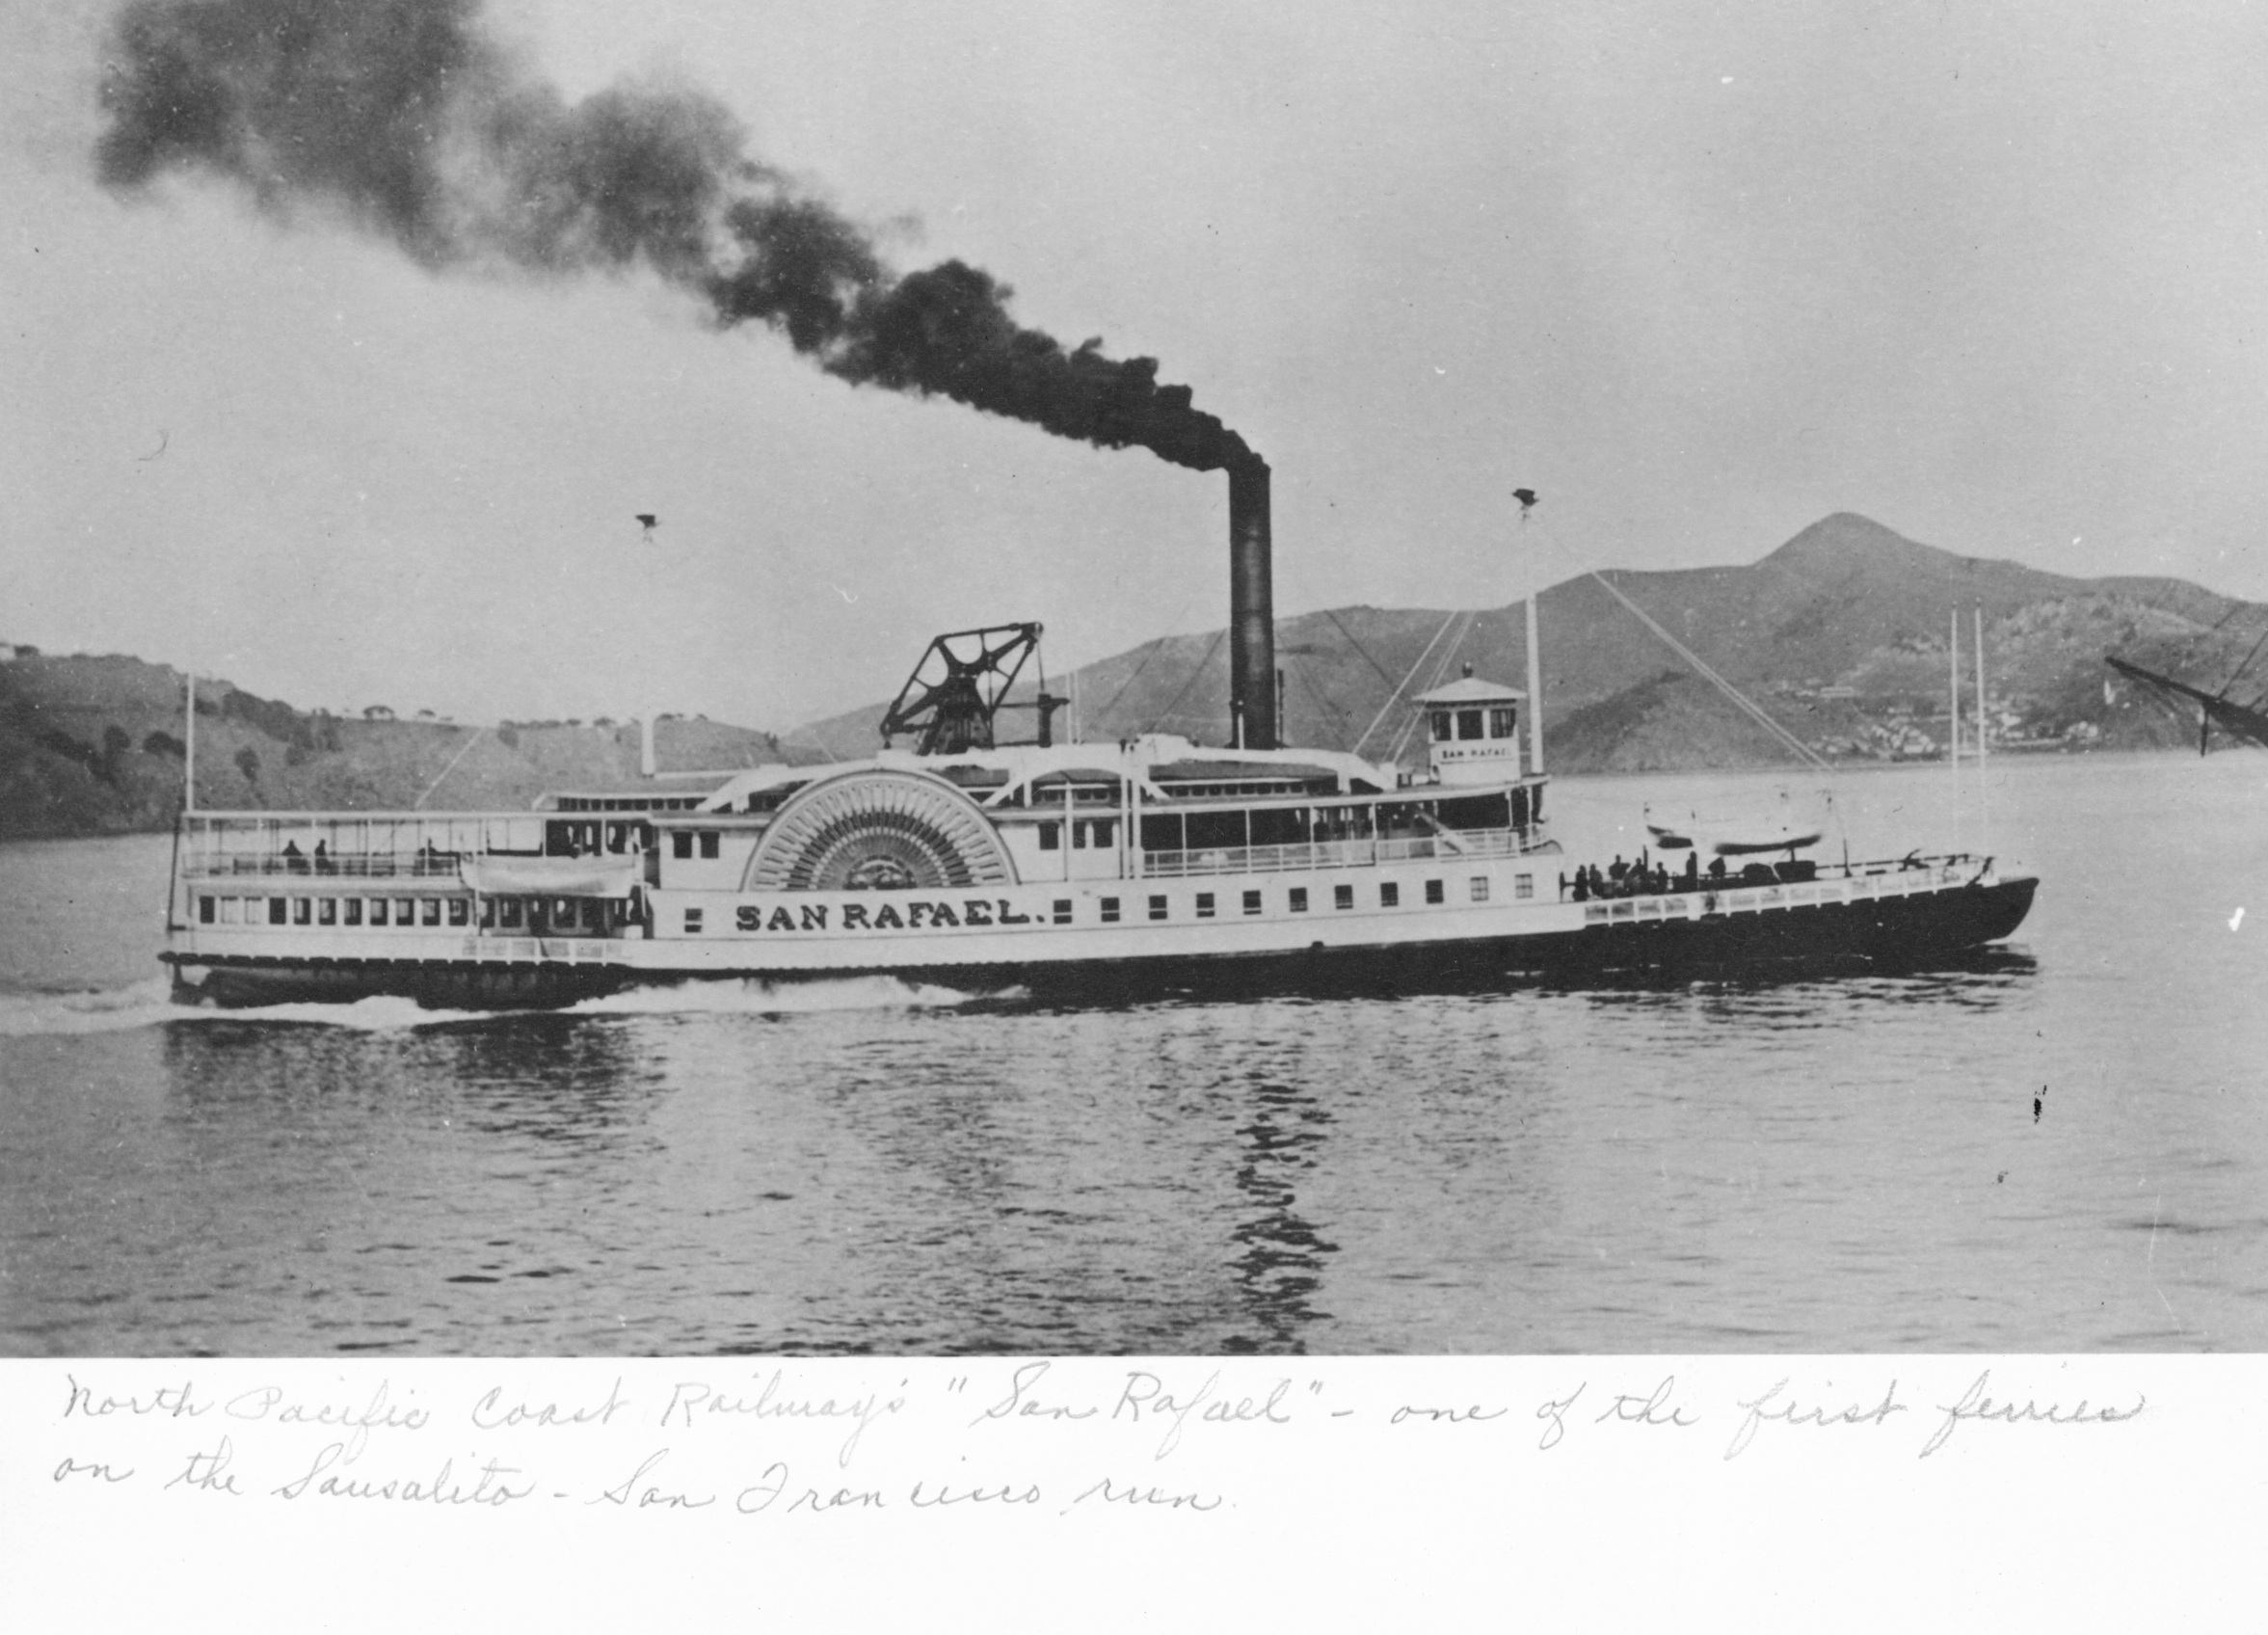 The Ferry San Rafael, which was rammed and sunk in another heavy fog just eight years after Fred Sandrock's account.  Photo courtesy of Sausalito Historical Society.